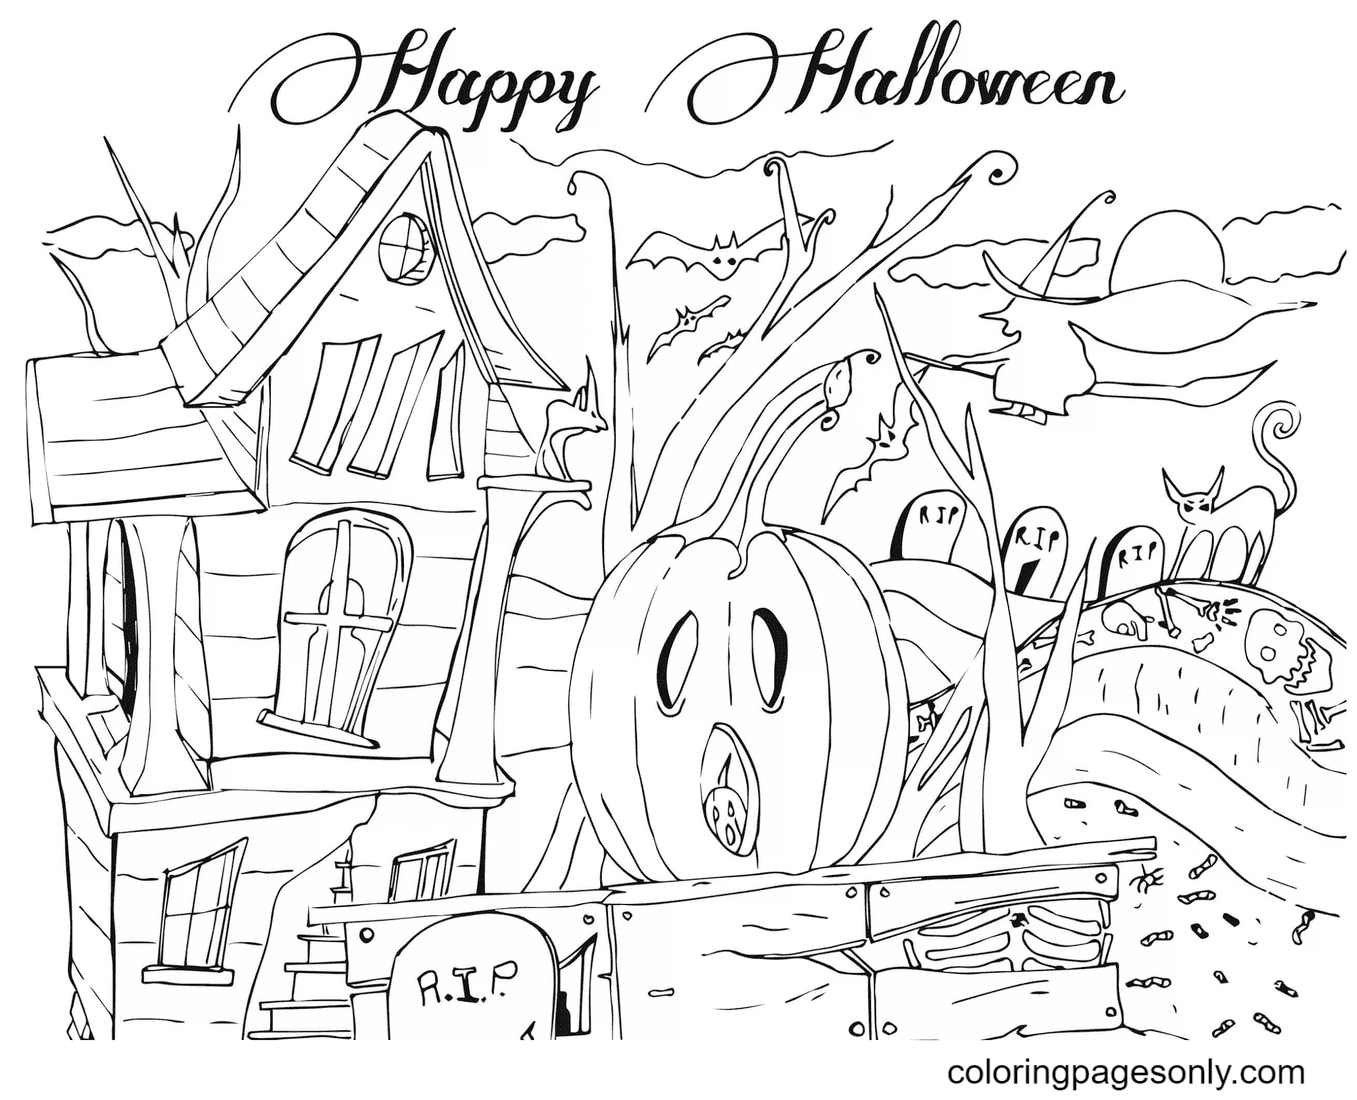 Abode of Ghosts and spirits Coloring Page